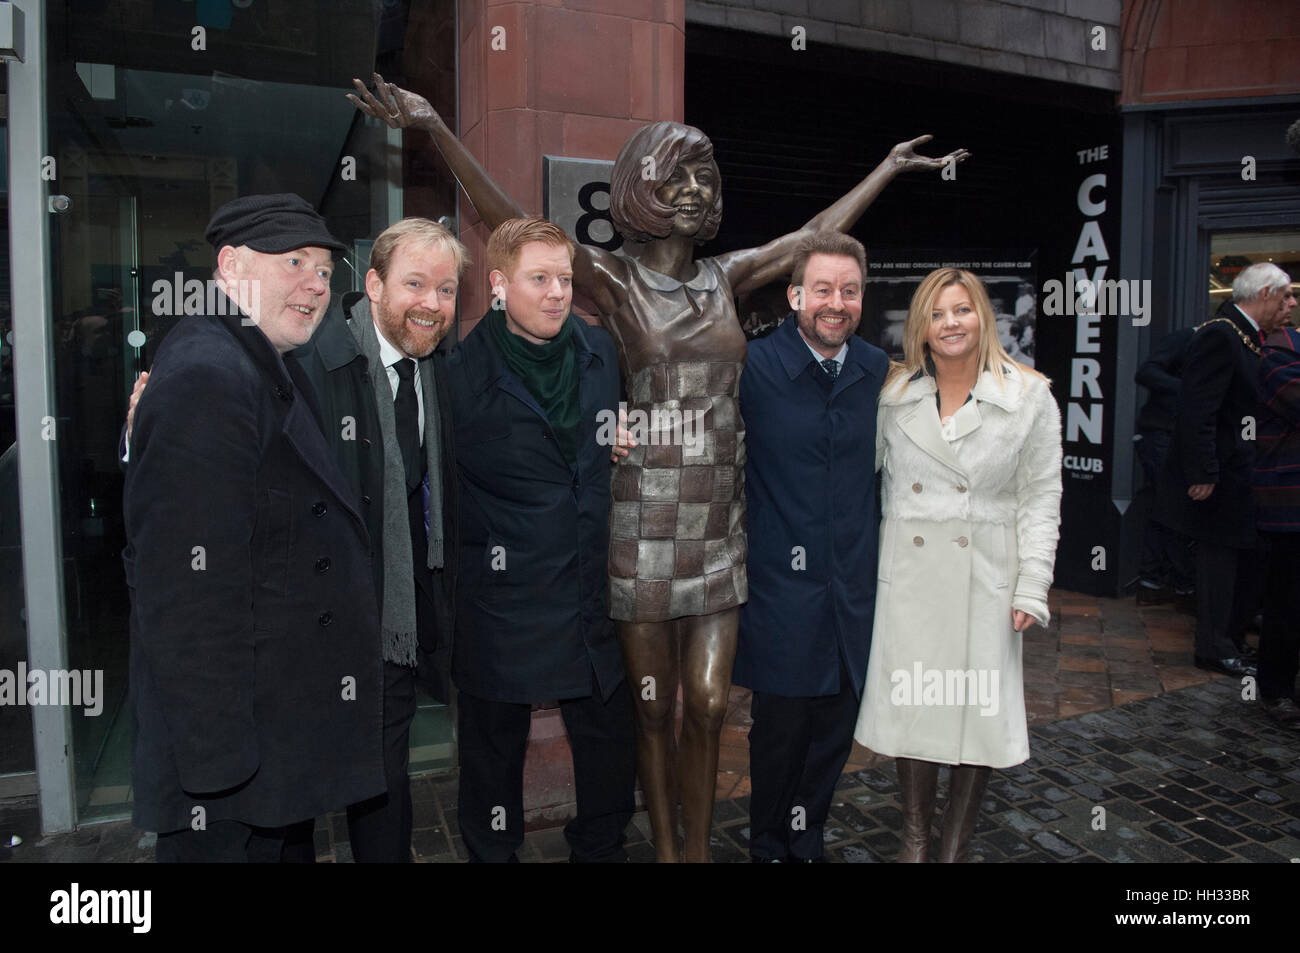 Liverpool, Royaume-Uni. 16 janvier 2017. Jack, Ben et Robert Willis, fils du défunt star, Cilla Black, de concert Photo Stock